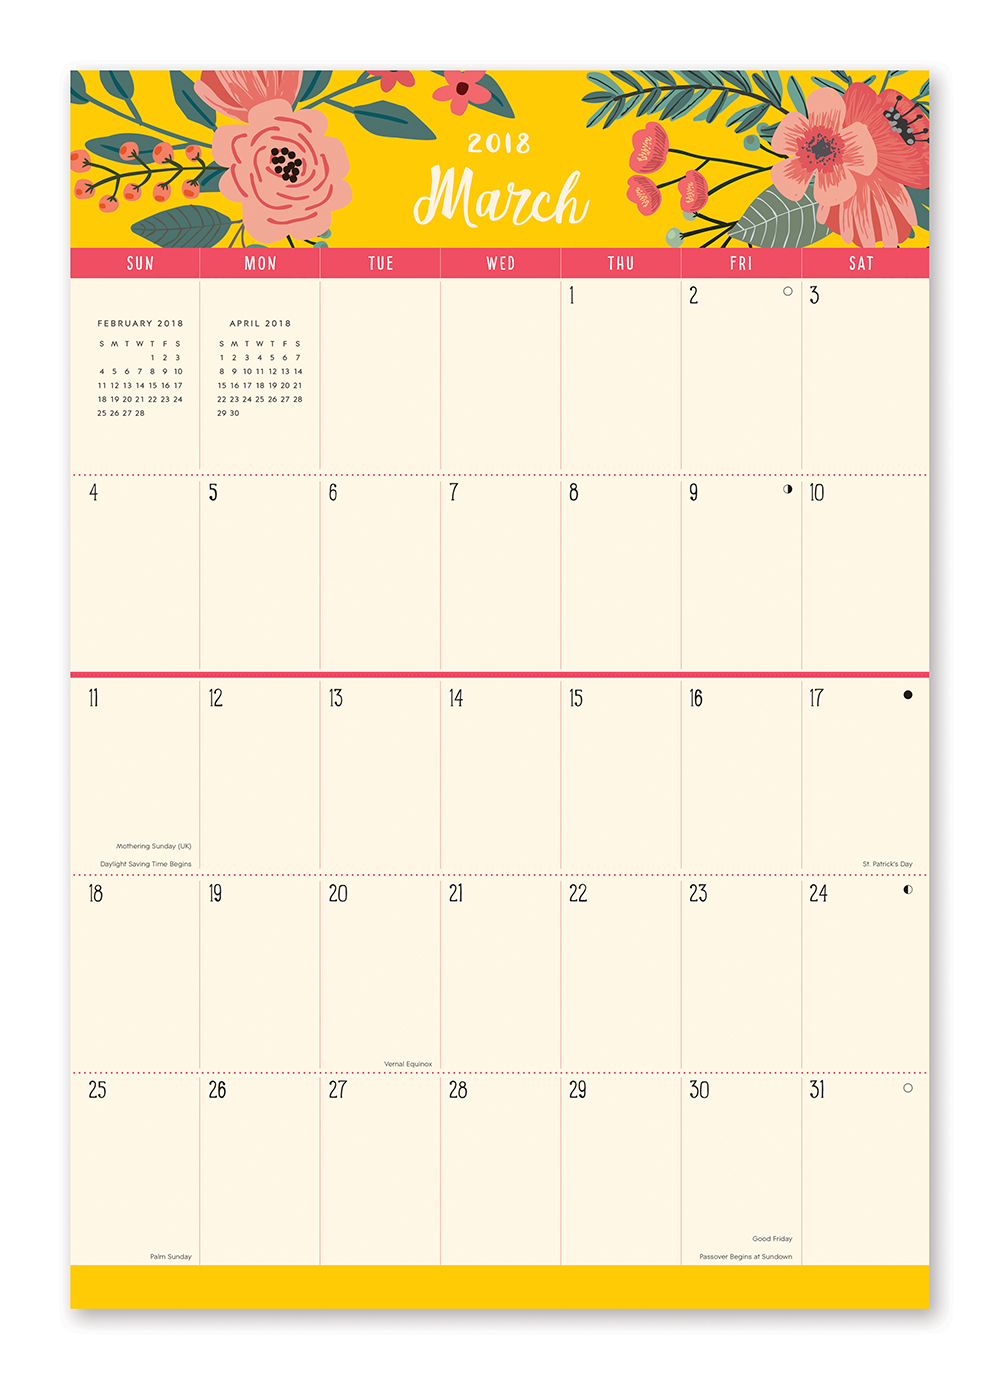 Secret Garden Do it All Wall Calendar 2018 by Orange Circle Studio inside 9781682581841